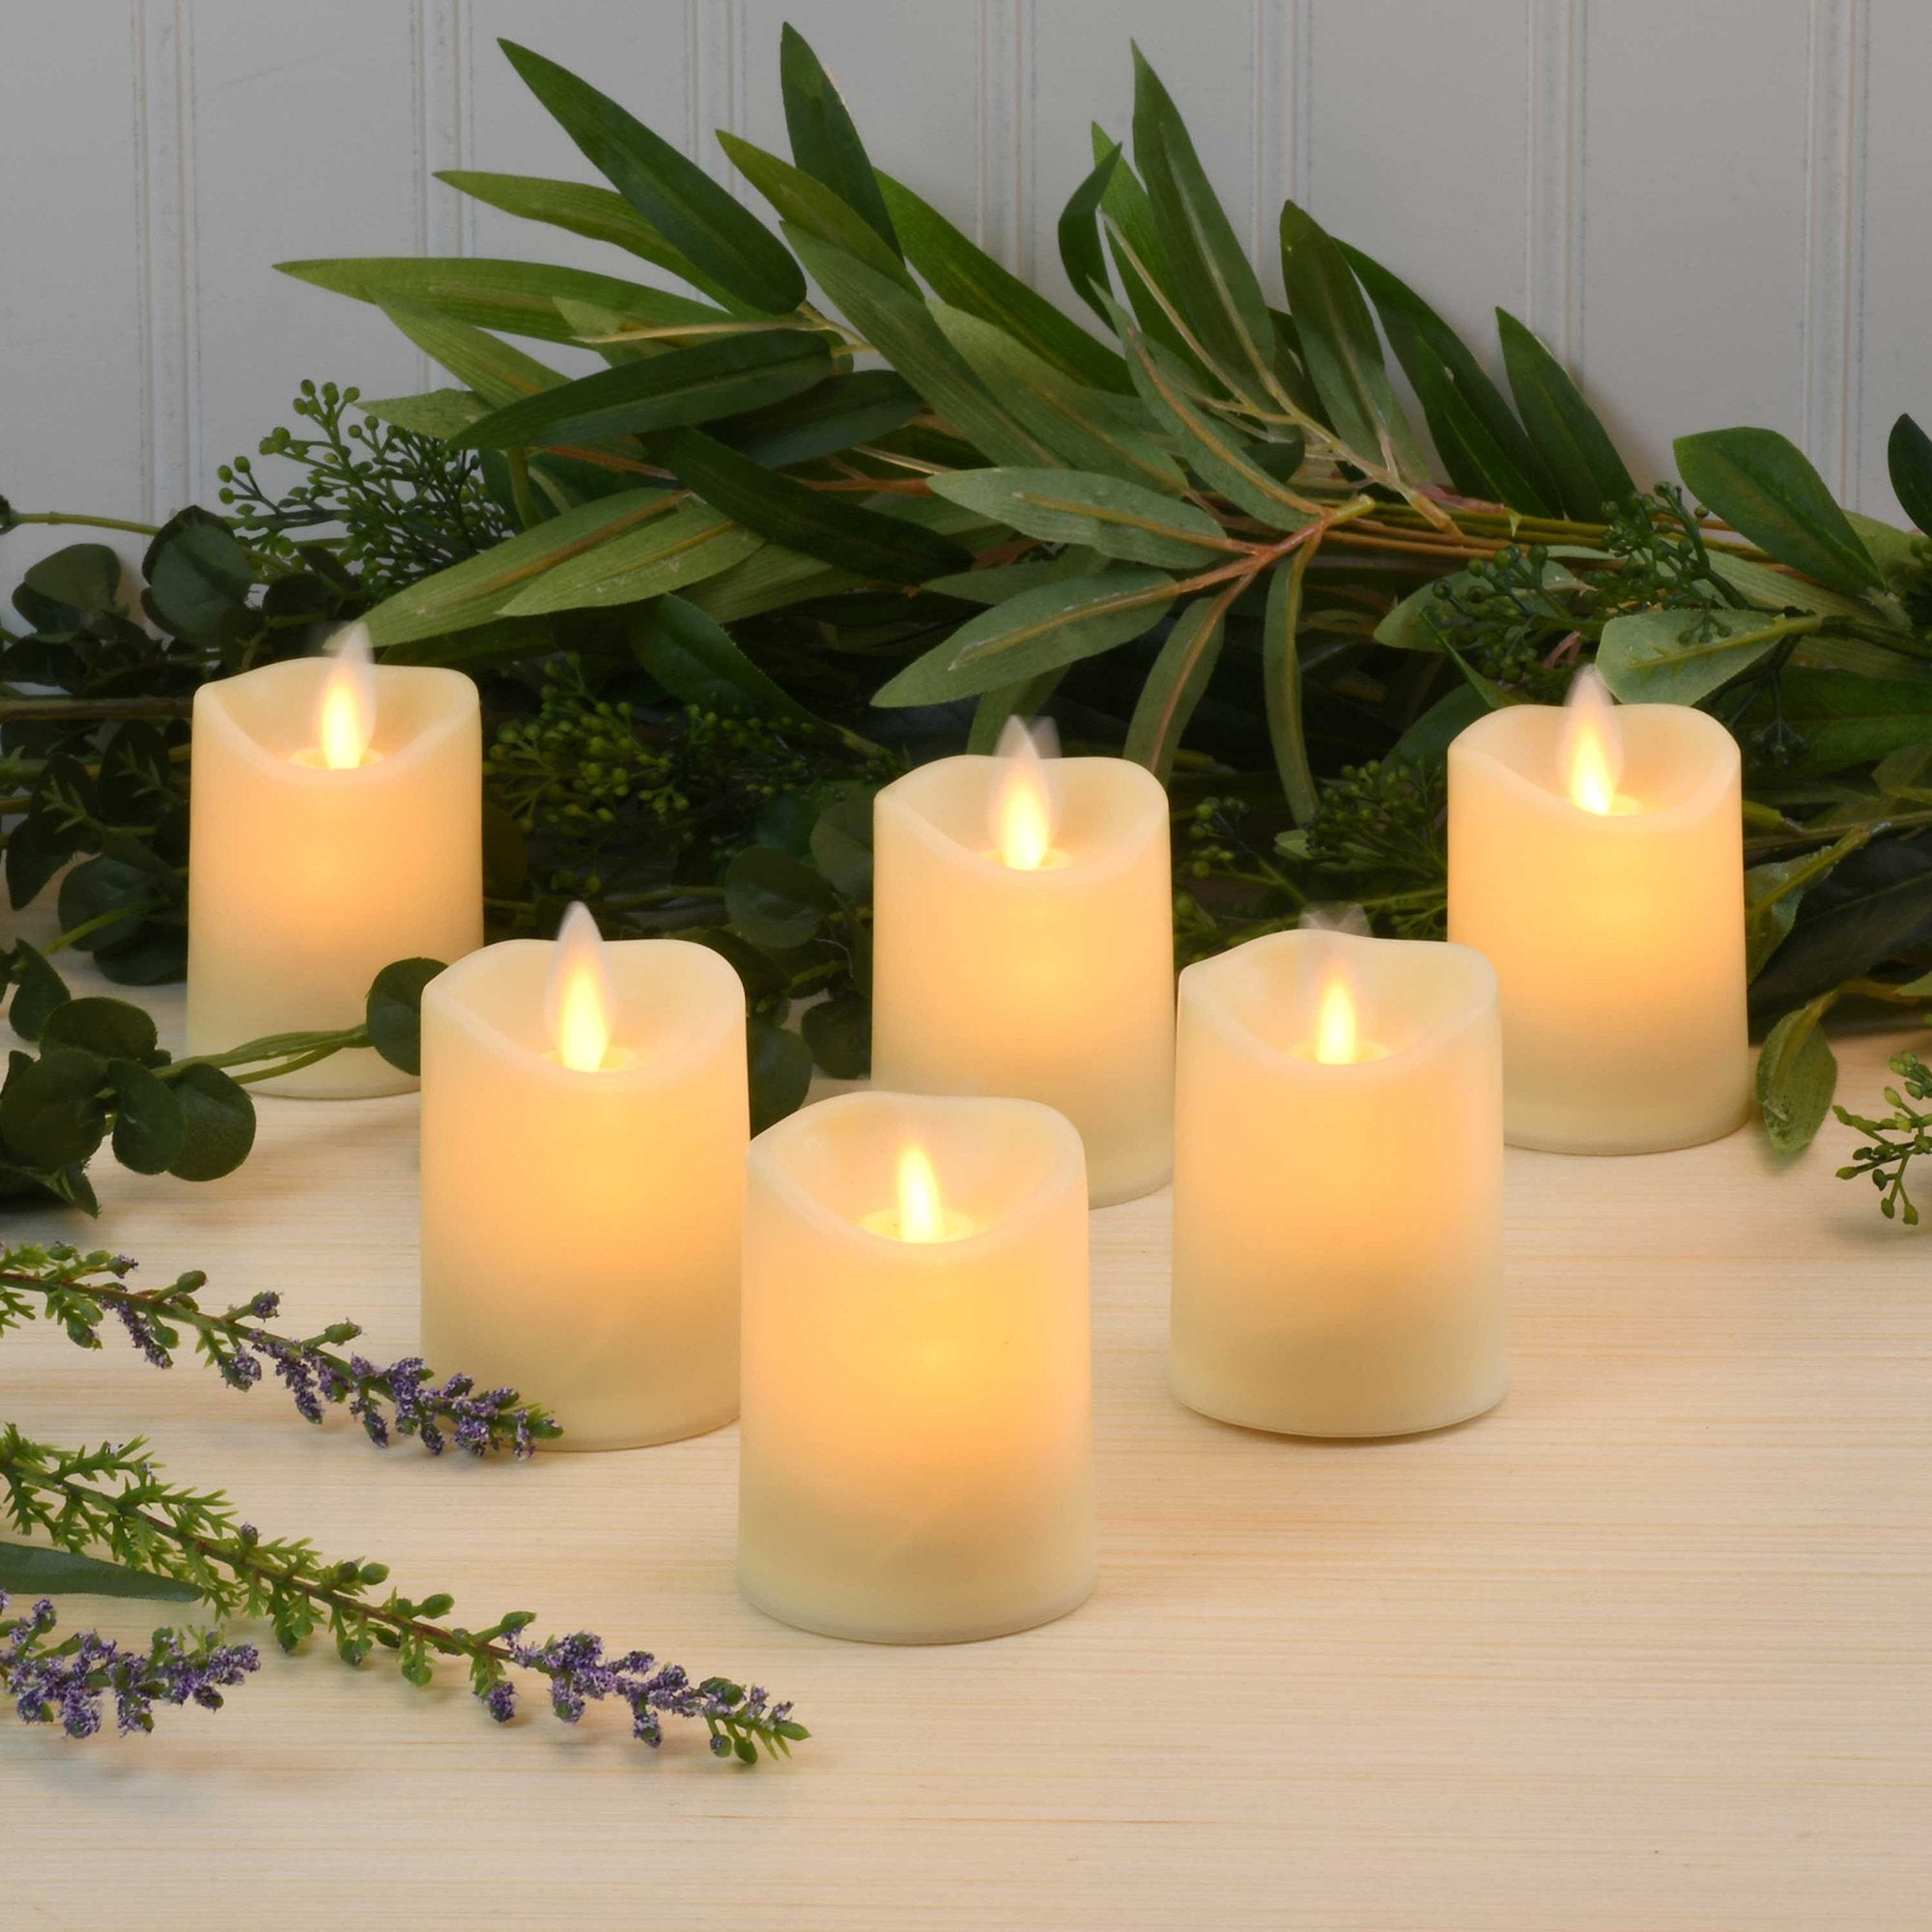 JH Specialties Inc. Moving Flame Battery Operated LED Votives in Cream